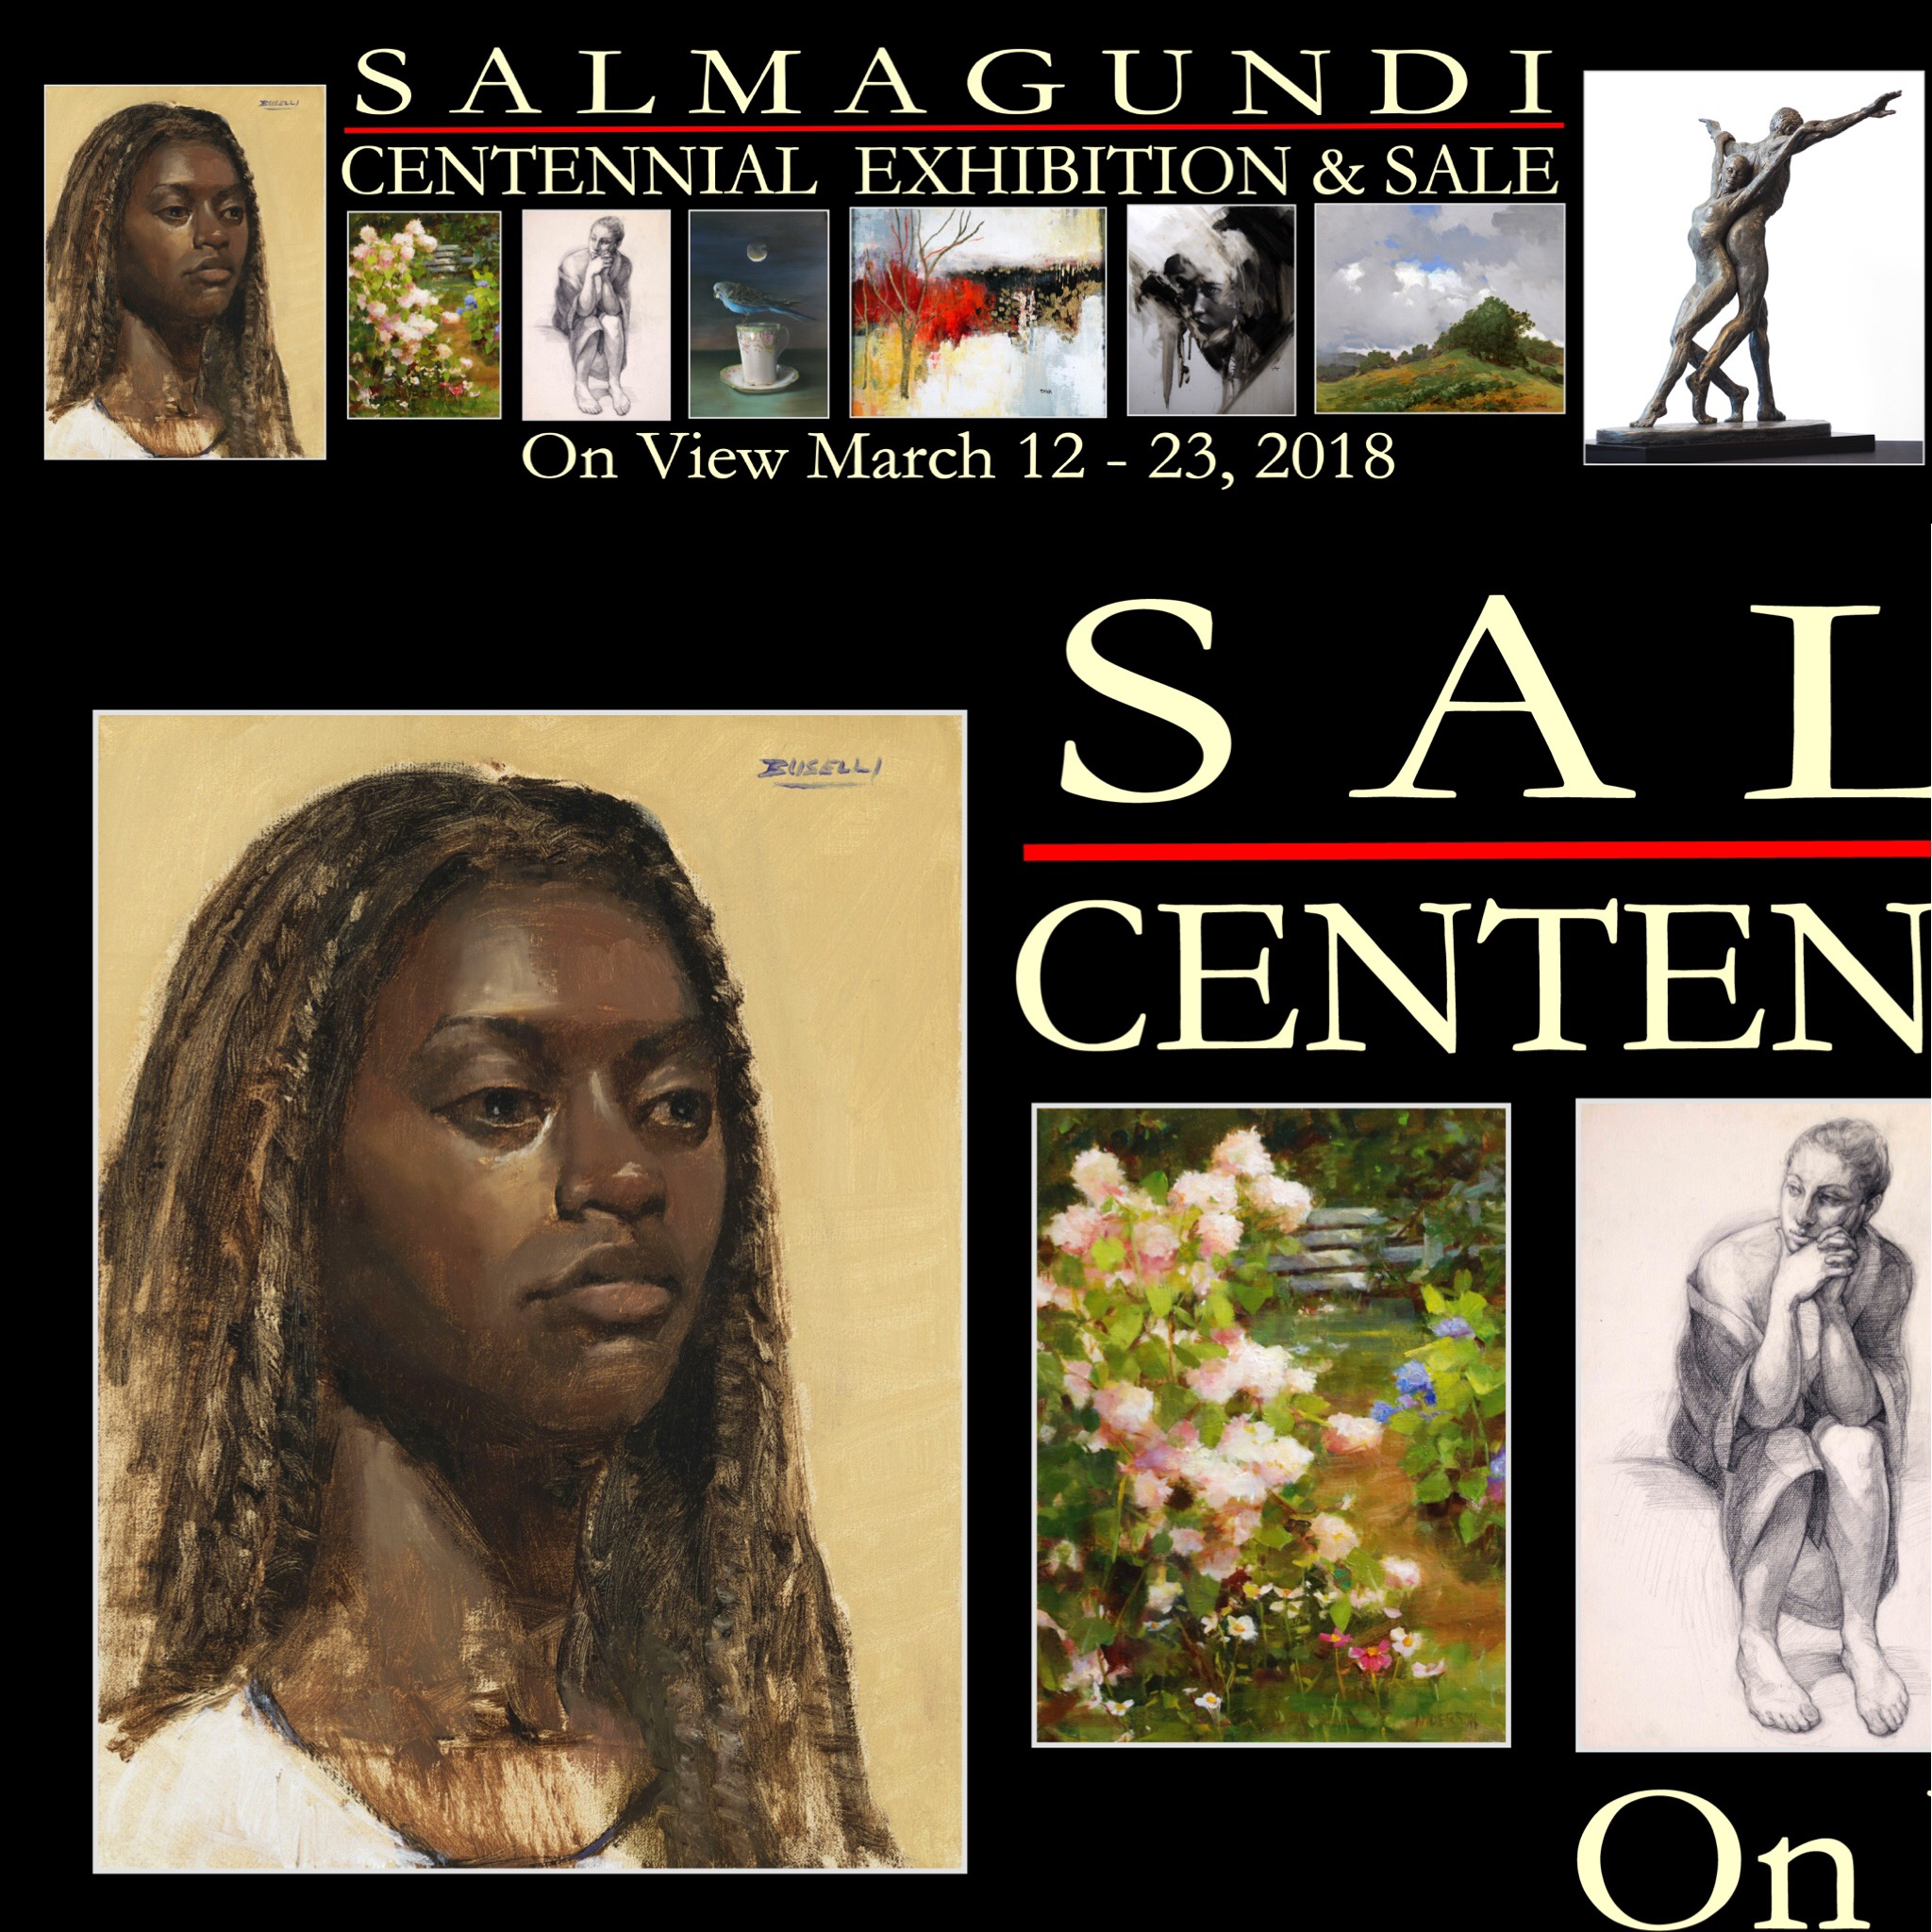 """""""BELLE"""" was selected to be on the Salmagundi Club Banner for the 2018 Centennial Exhibition and Sale. An honor to have my alla-prima portrait featured on Fifth Avenue in front of the historic and oldest art club in New York City."""